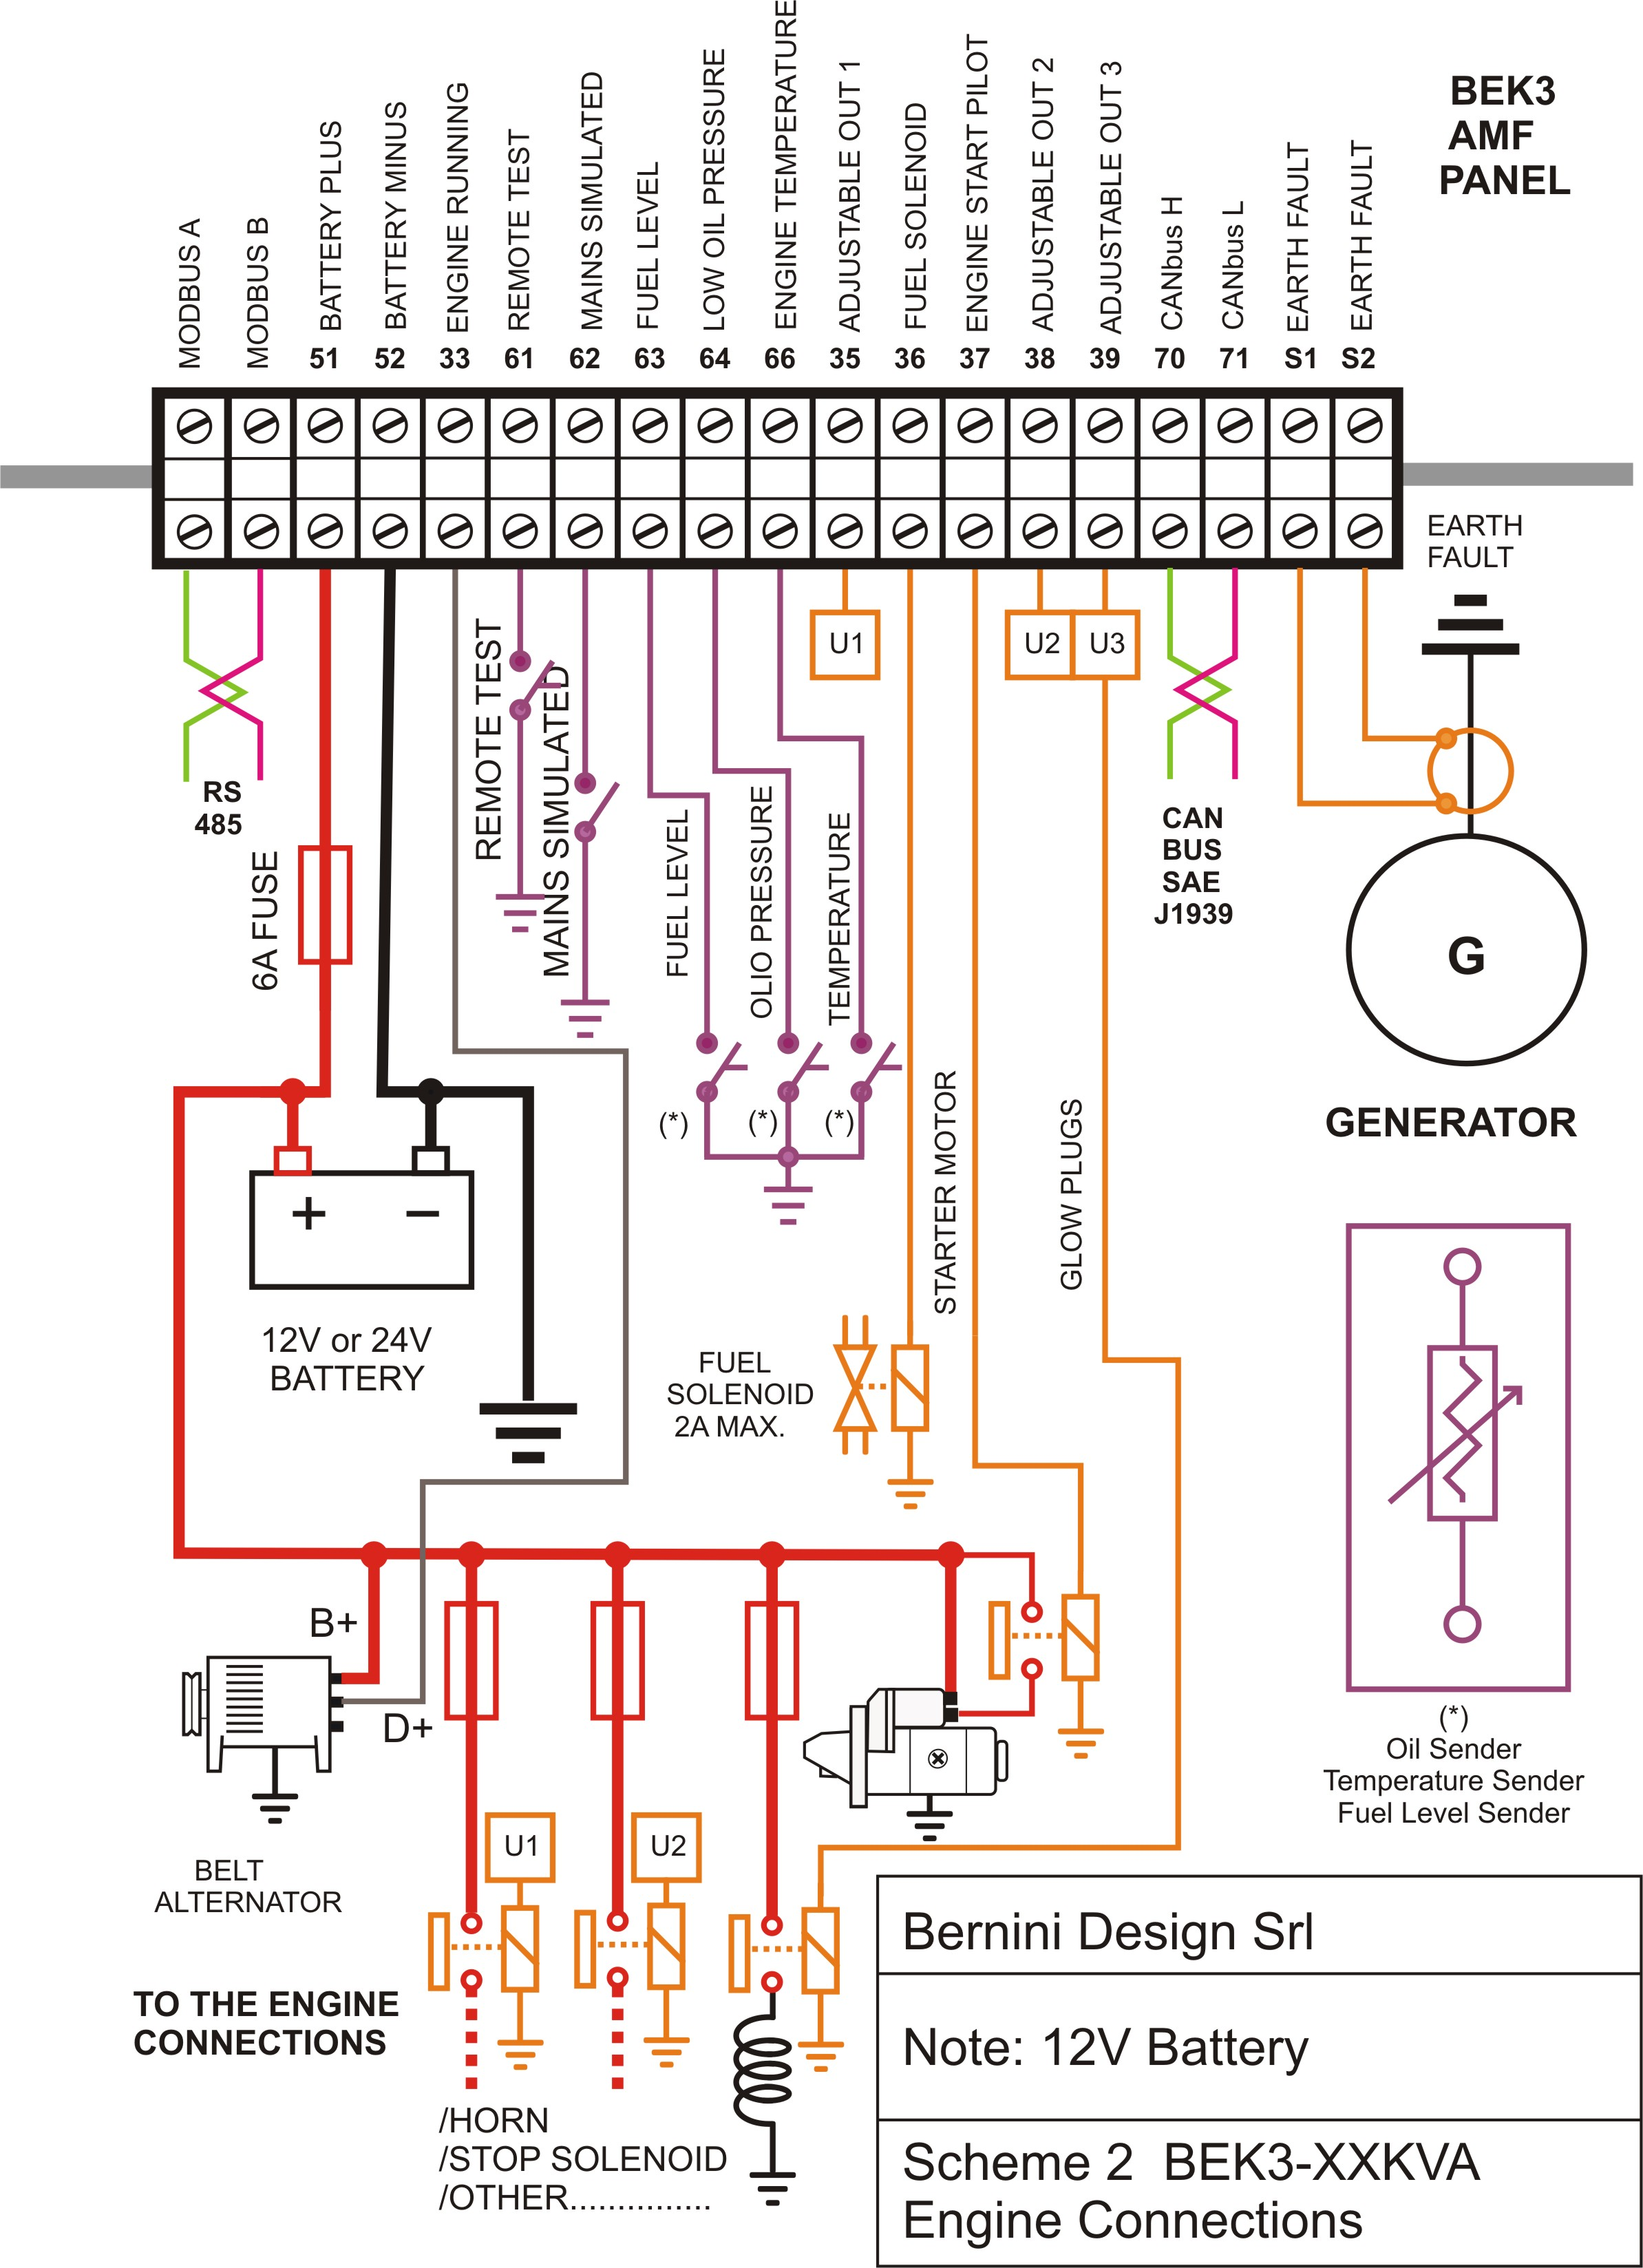 Generator Voltage Regulator Wiring Diagram Harley furthermore Induction Coil Schematic Diagram also Agora cgi furthermore Lucas Alternator Exploded View Wiring Diagrams as well Life Wiring Diagram. on ac delco generator wiring diagram